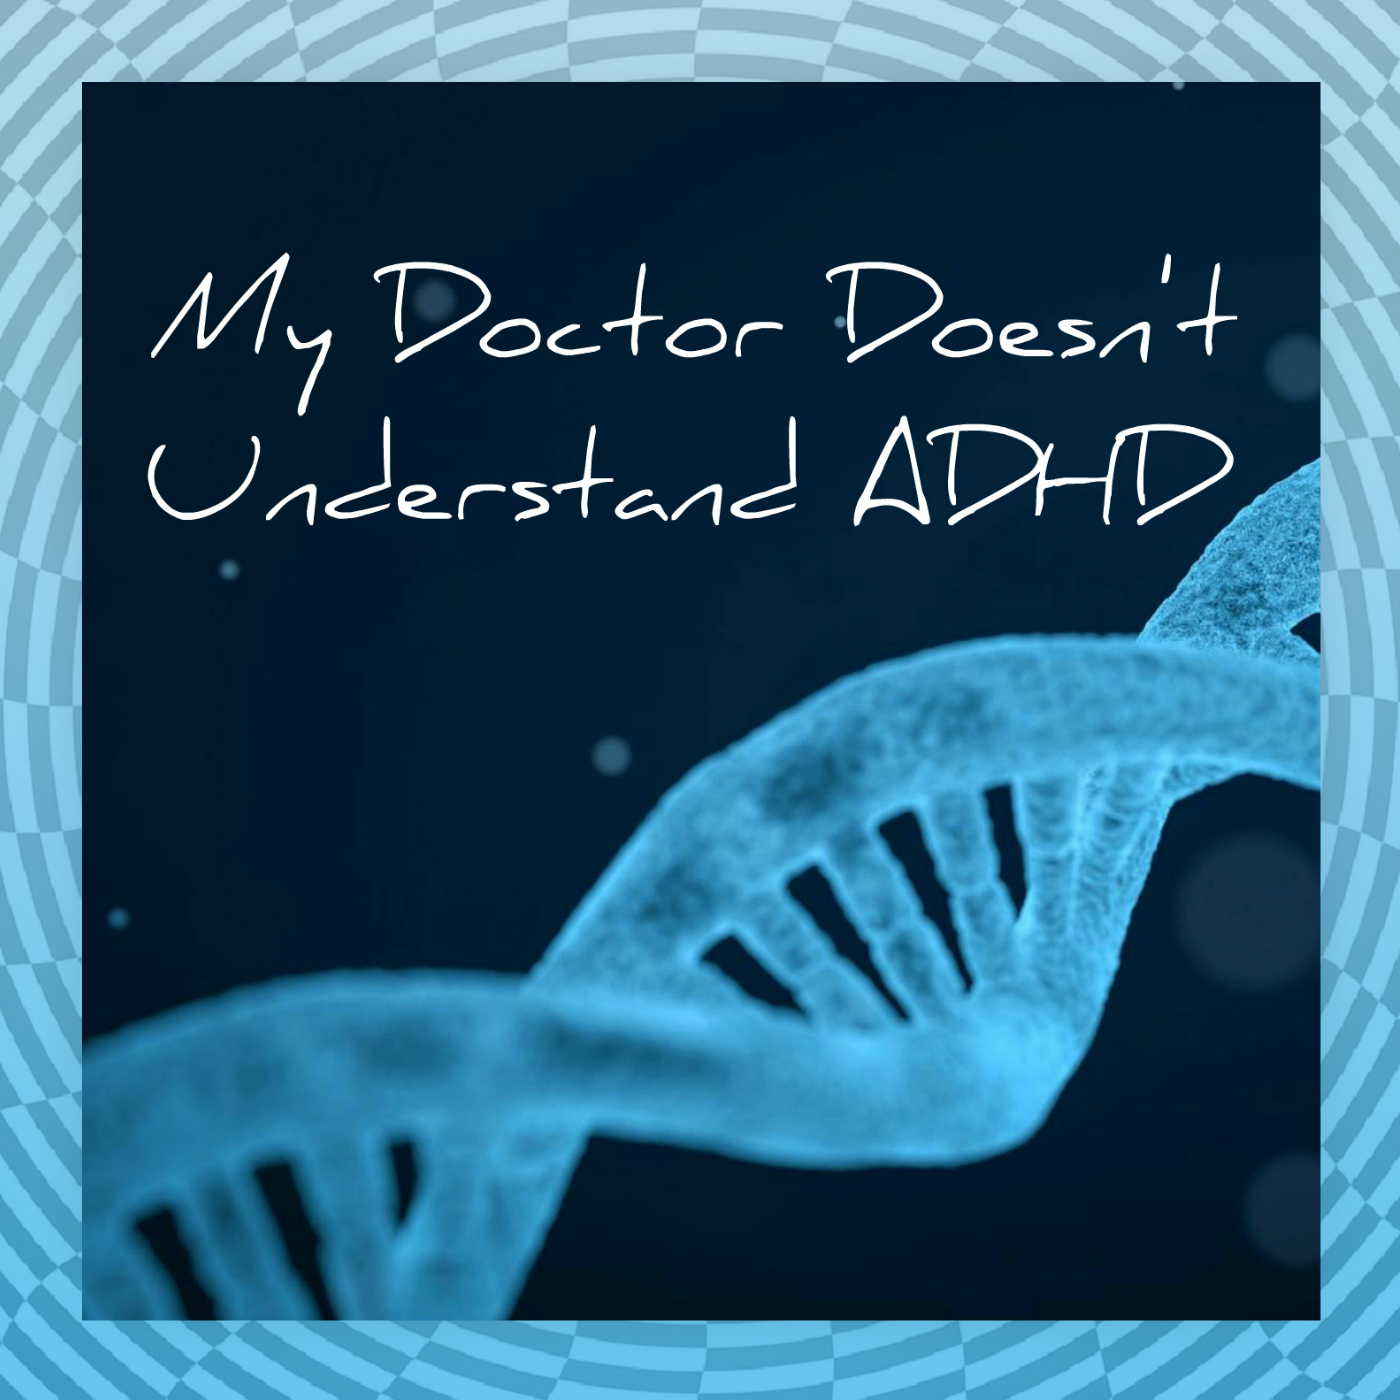 S3 Ep 29: My Doctor Doesn't Understand ADHD